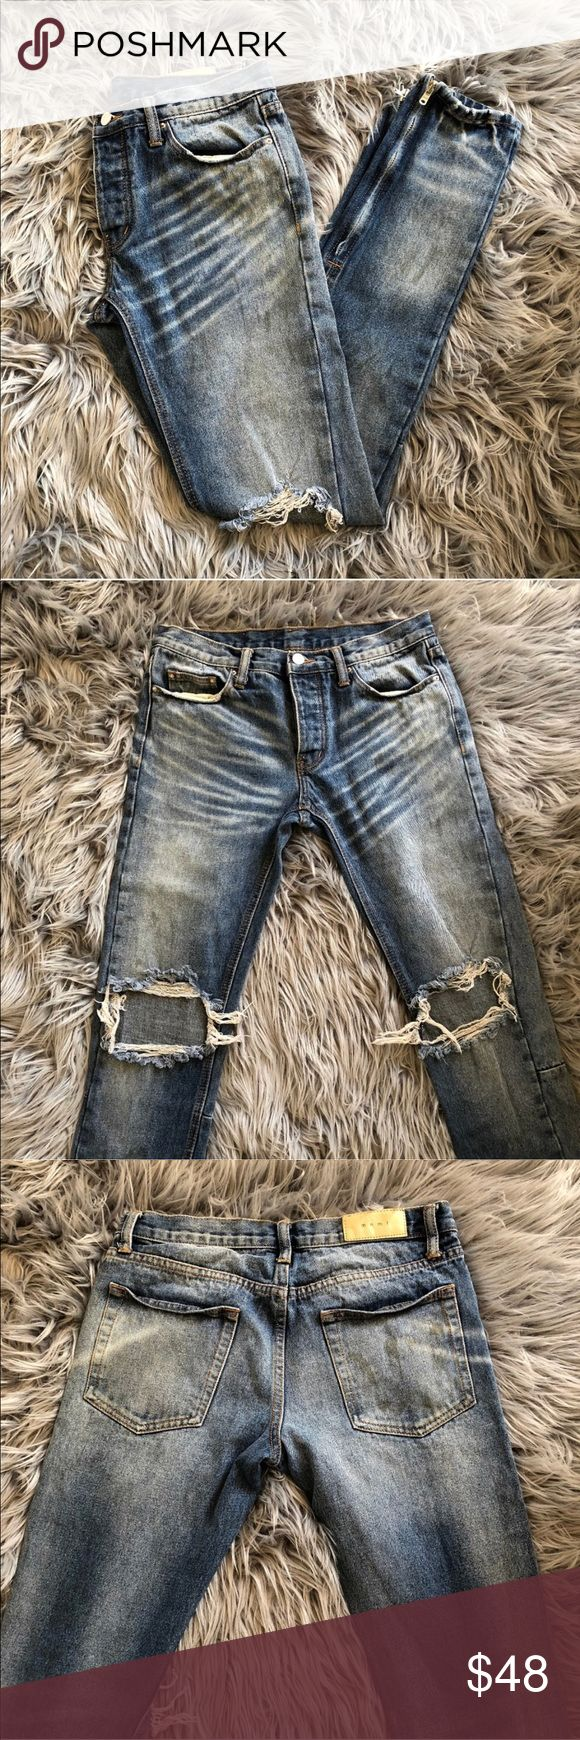 MNML LA Distressed Ripped Vintage Wash Blue Jeans Has vintage wash like Saint Laurent SLP and Zipper bottom like Fear of God FOG. Best of both worlds in one!  Size: 30 Width x 32 Length Condition:  9/10  * Ships within 24 hours or less EXCLUDING weekends. Submitted offers will be responded ONLY!   Prada Louis Vuitton Chanel Goyard LV Luluemon Burberry Hermes Berkin Nike Purse Adidas Yeezy Supreme Bape Box Logo Jacket Zara HM Luxury YSL Saint Laurent Versace Balmain Amiri Gucci Monogram Demin…